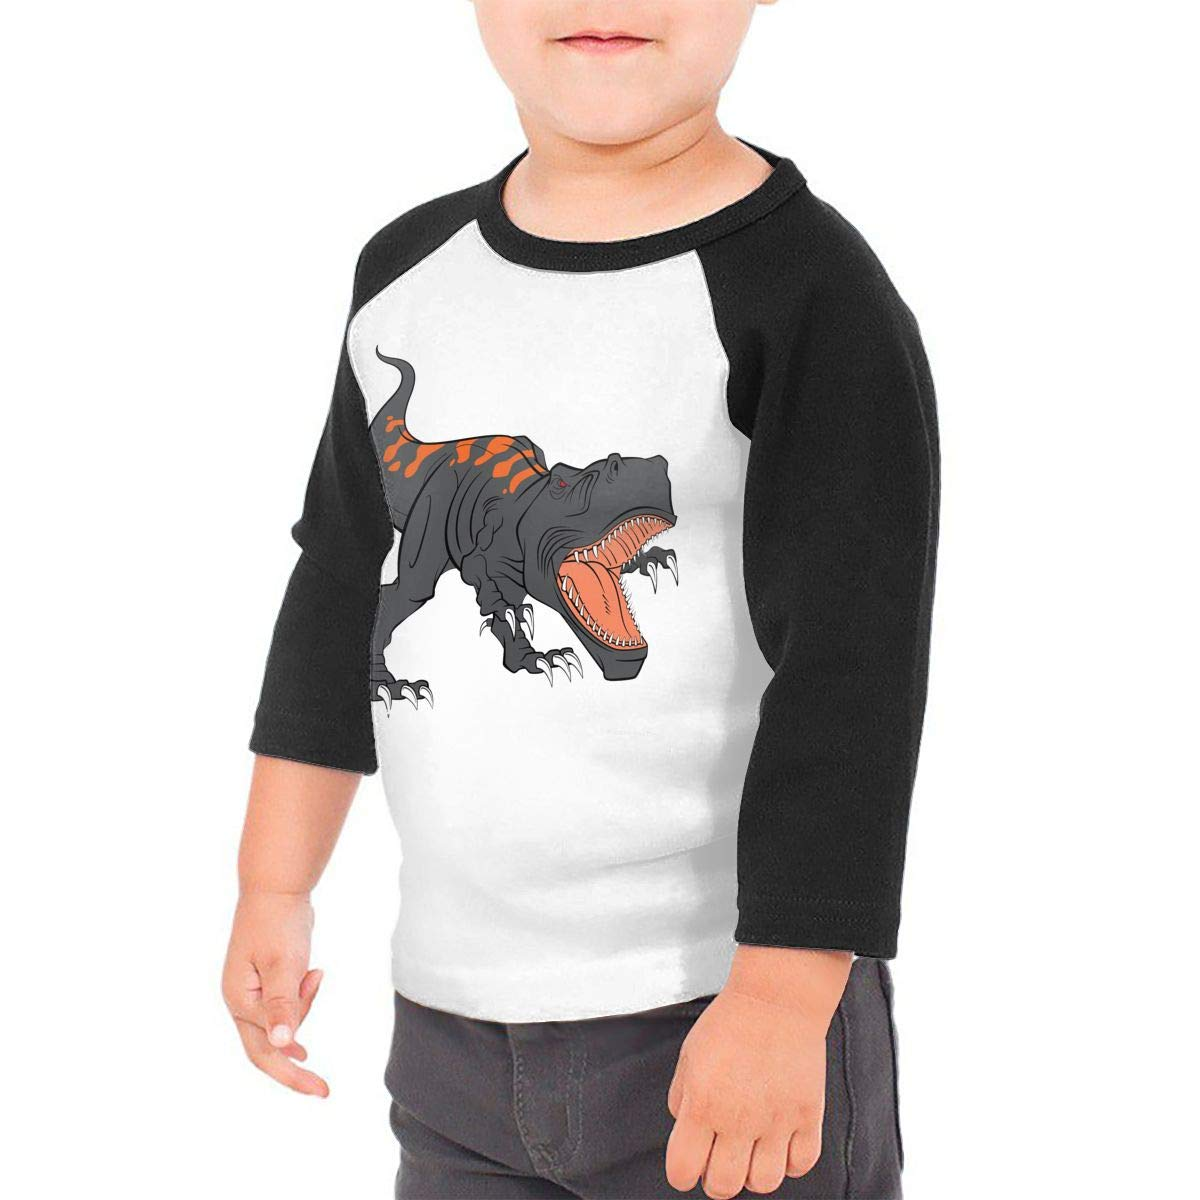 Kid's Boys&girls The Fierce Dinosaur 3/4 Sleeve Raglan Tee Shirt For 2-6T Fillmore-M